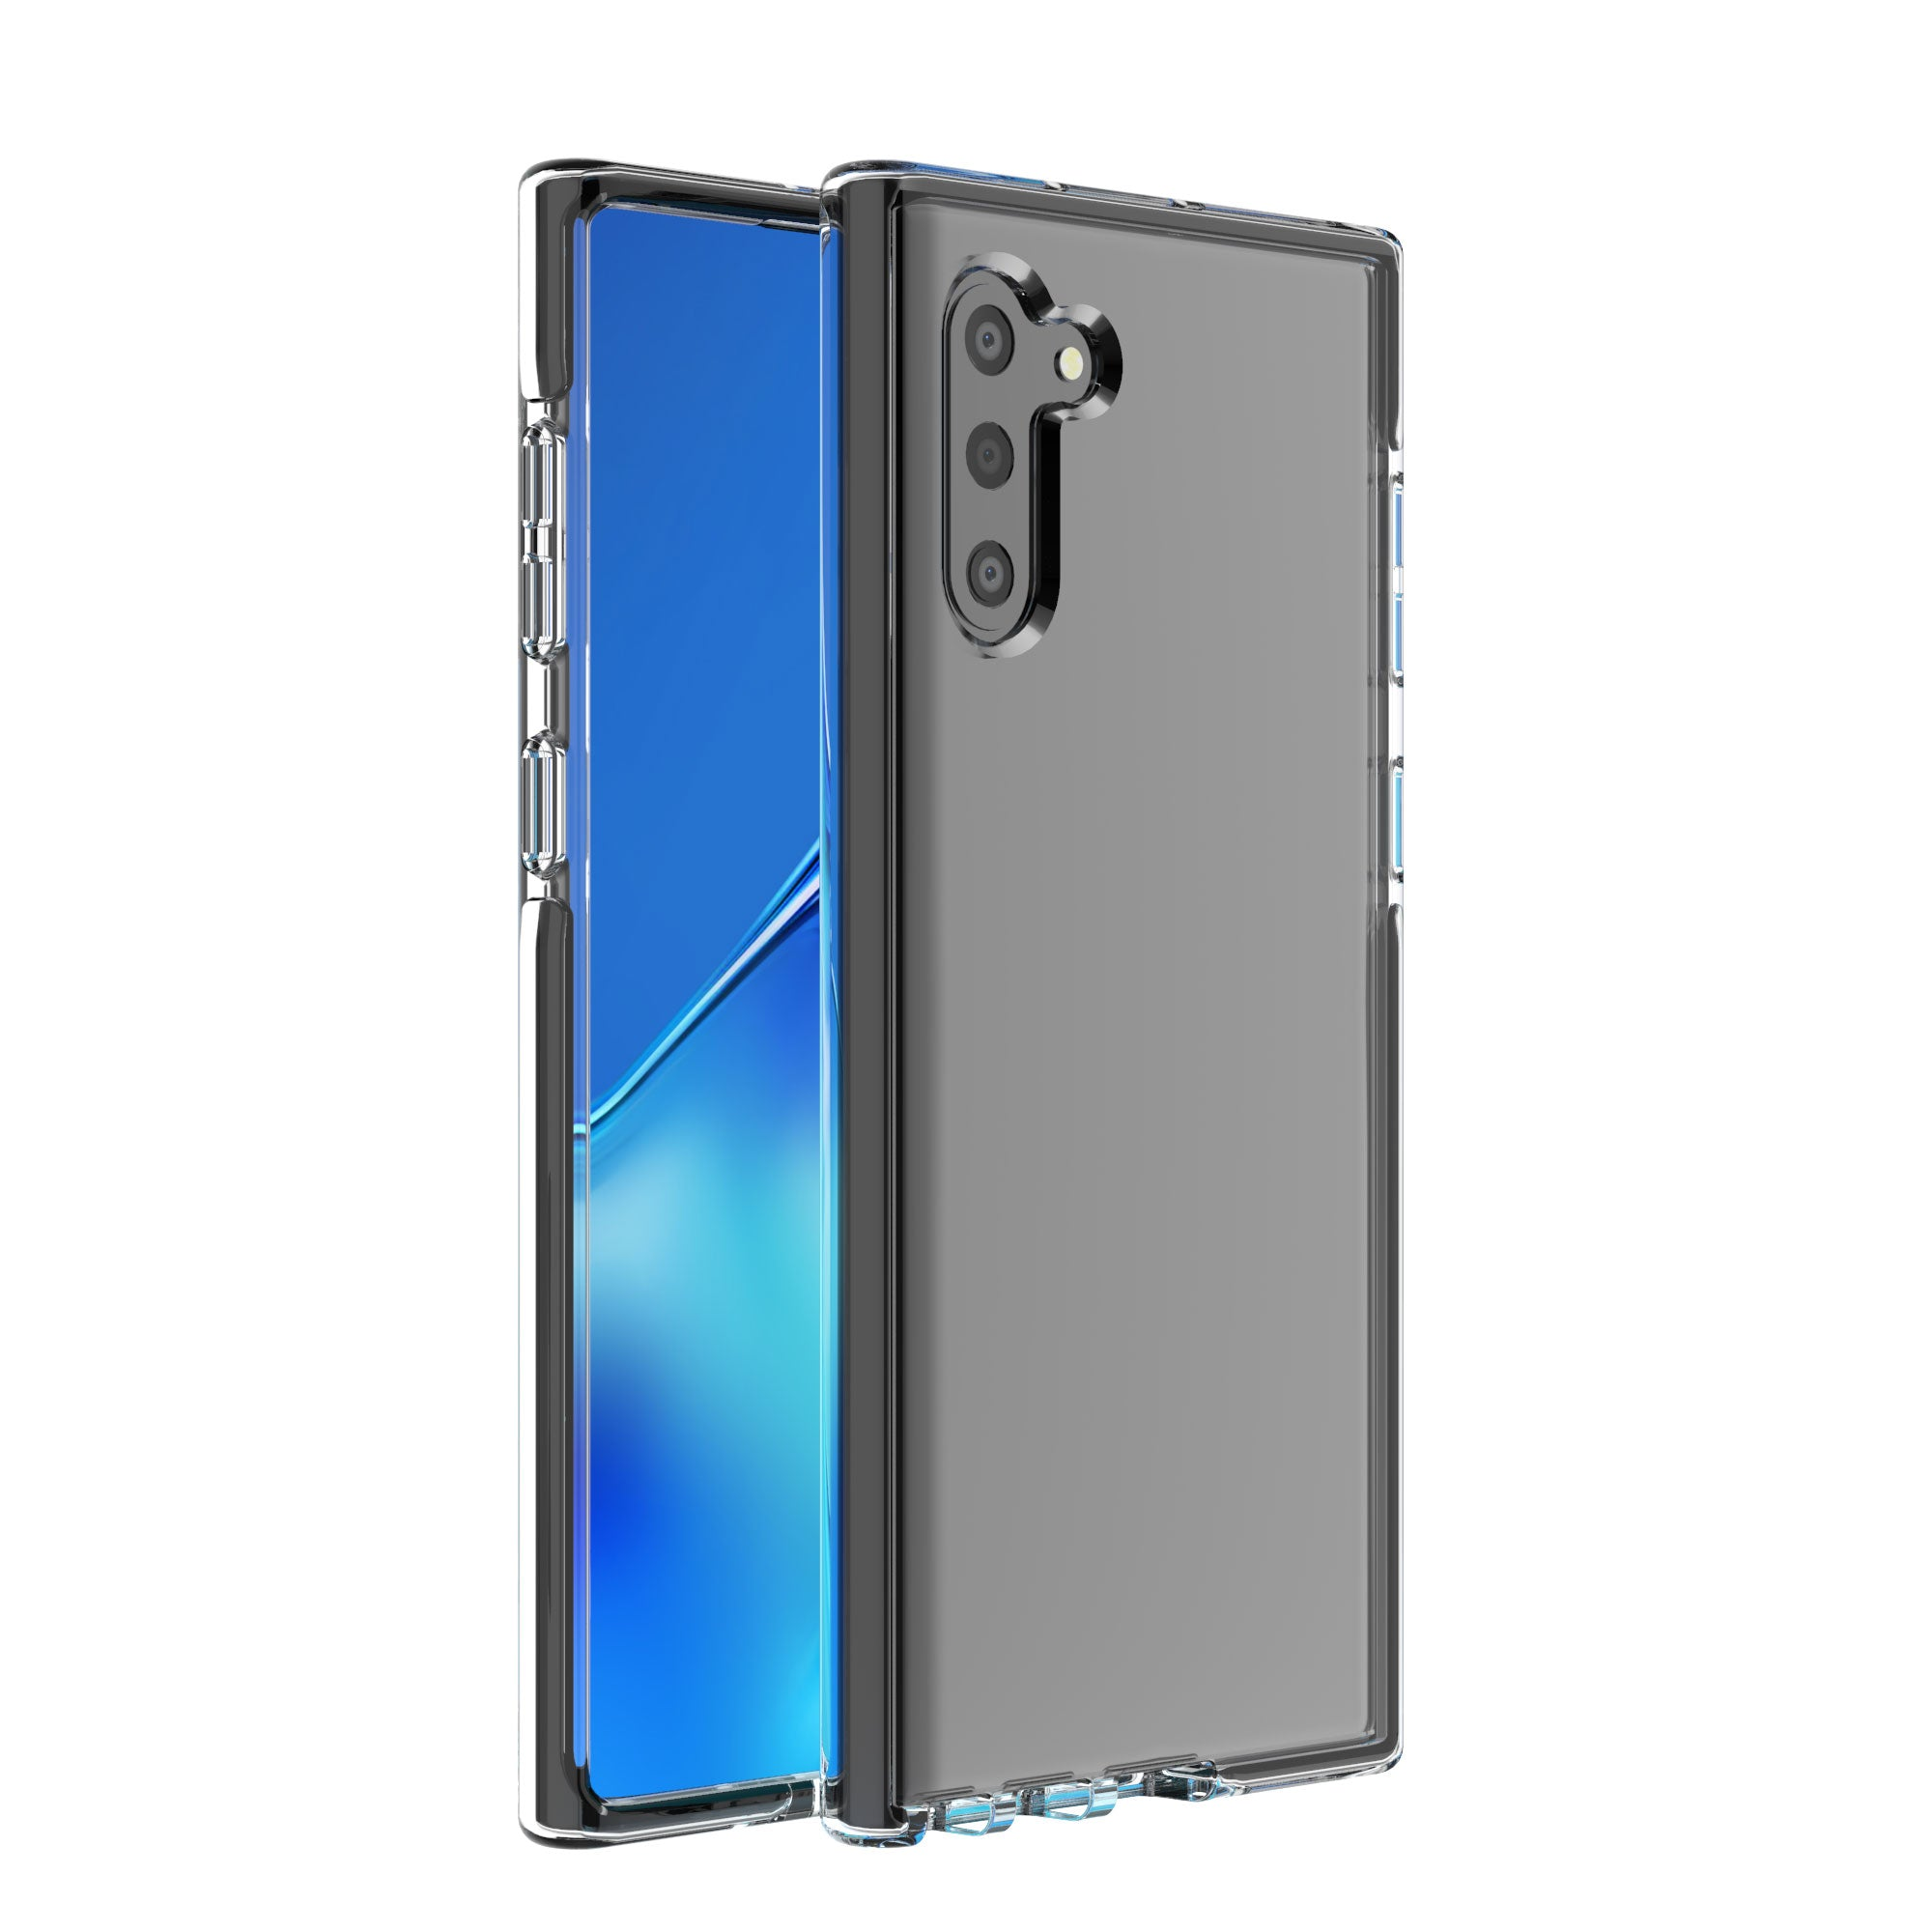 Tough TPU Case - Samsung Galaxy Note 10 Plus